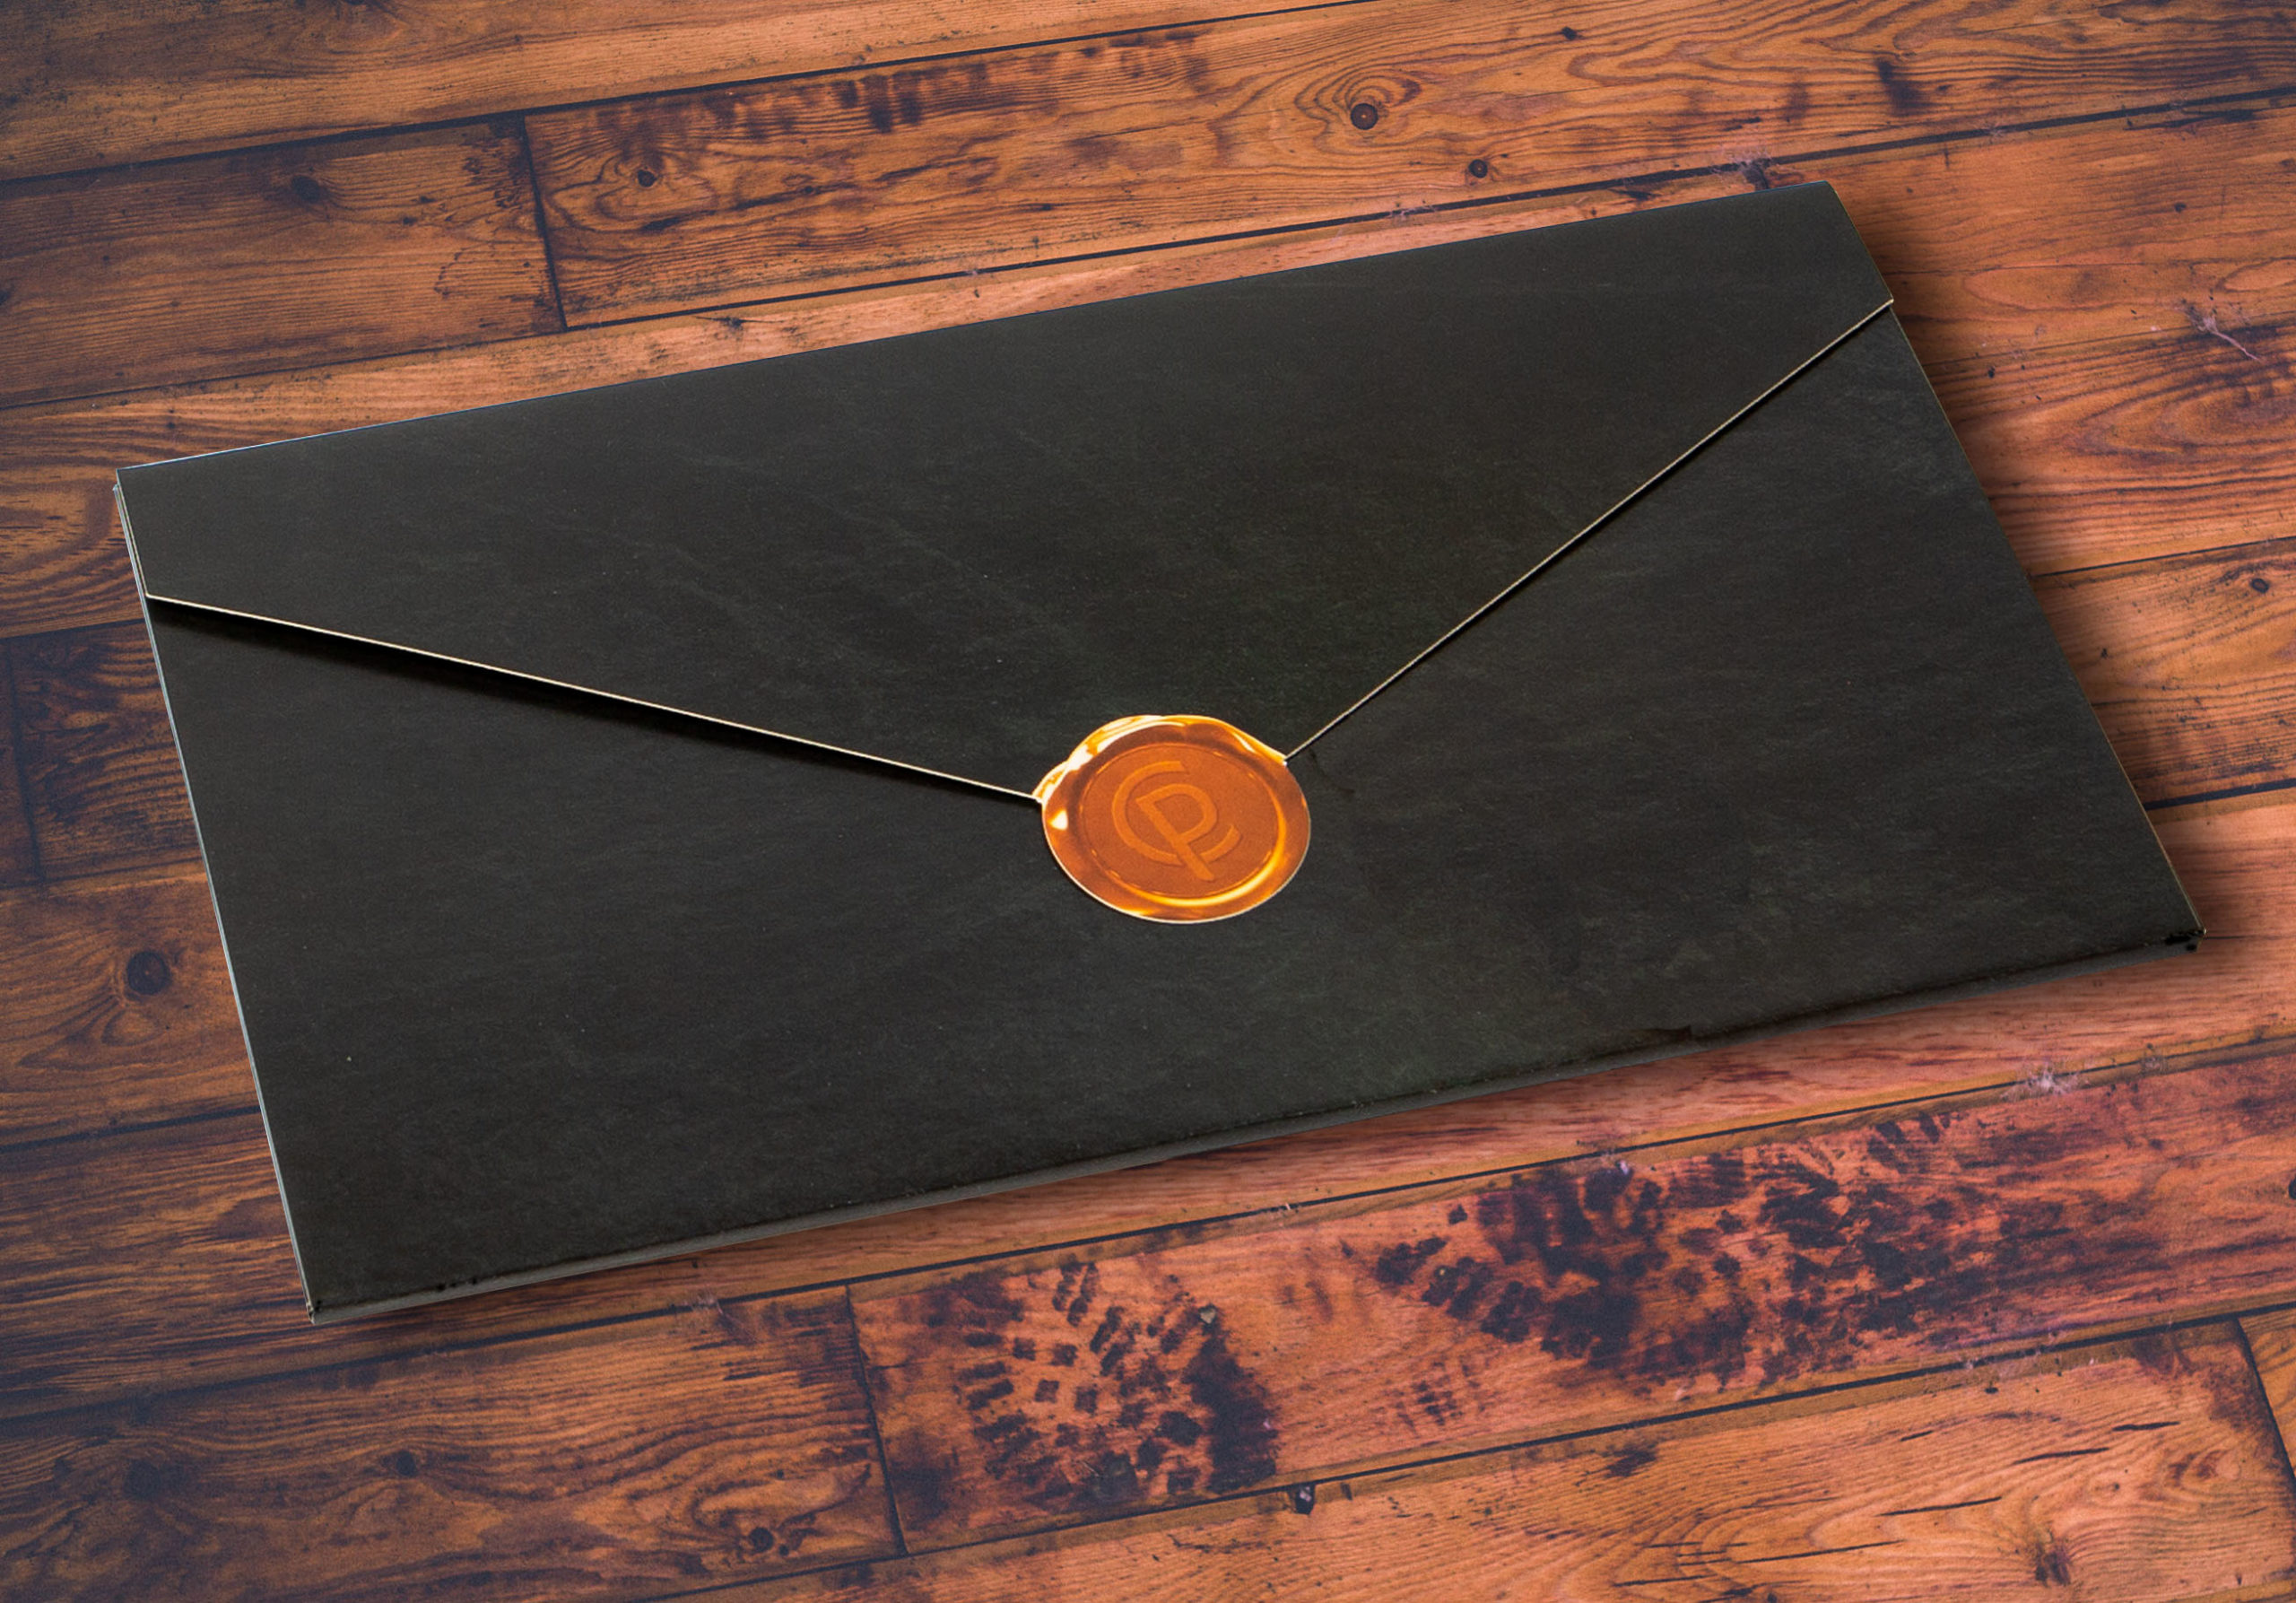 Closed business to business mailer with classy style and orange diecut seal on wooden table